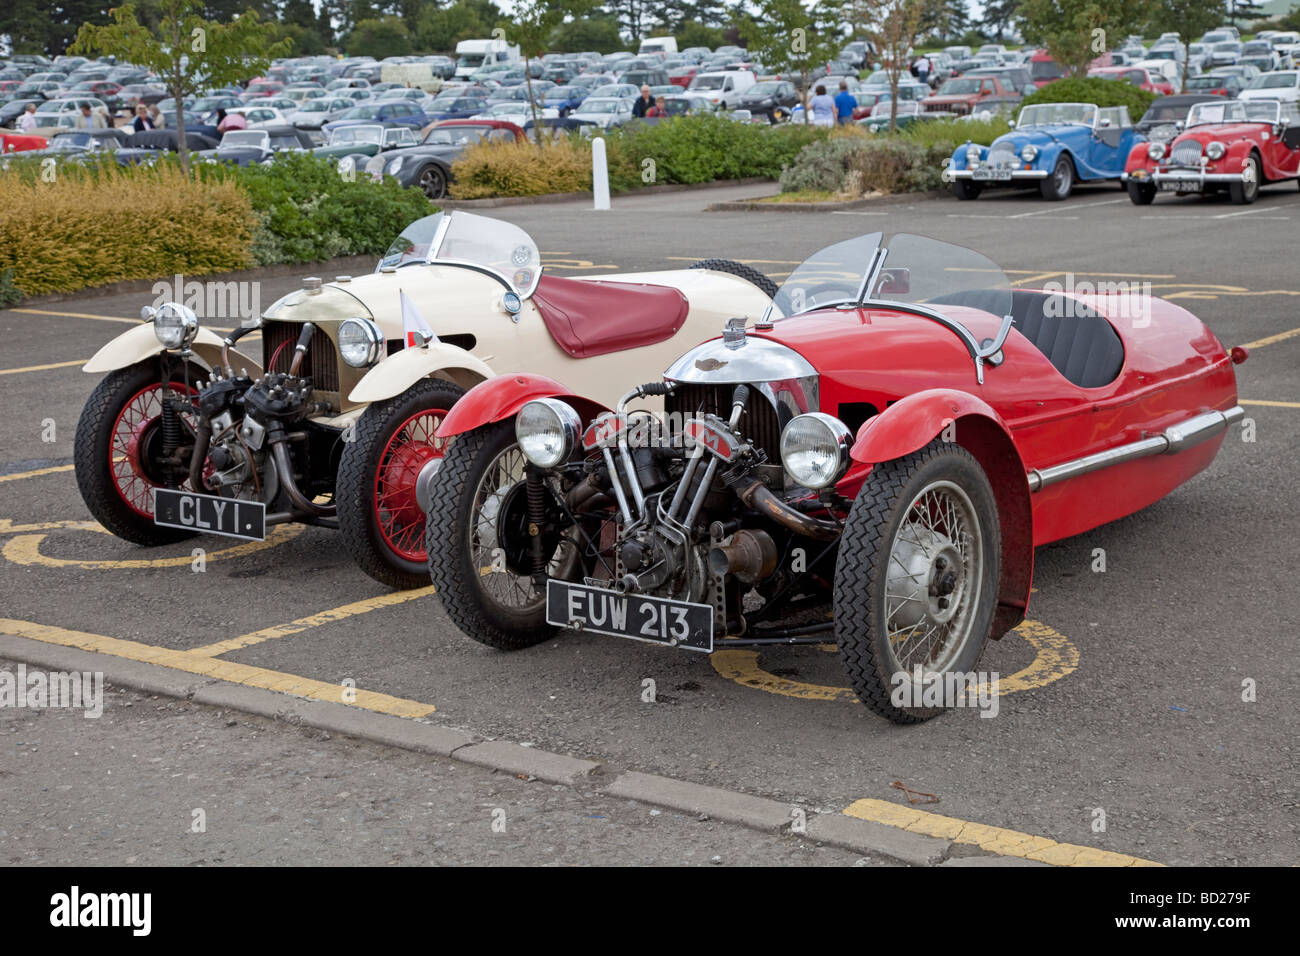 Two Morgan Three Wheeler Motor Cars Red And White Parked In Front Of Stock Photo Alamy